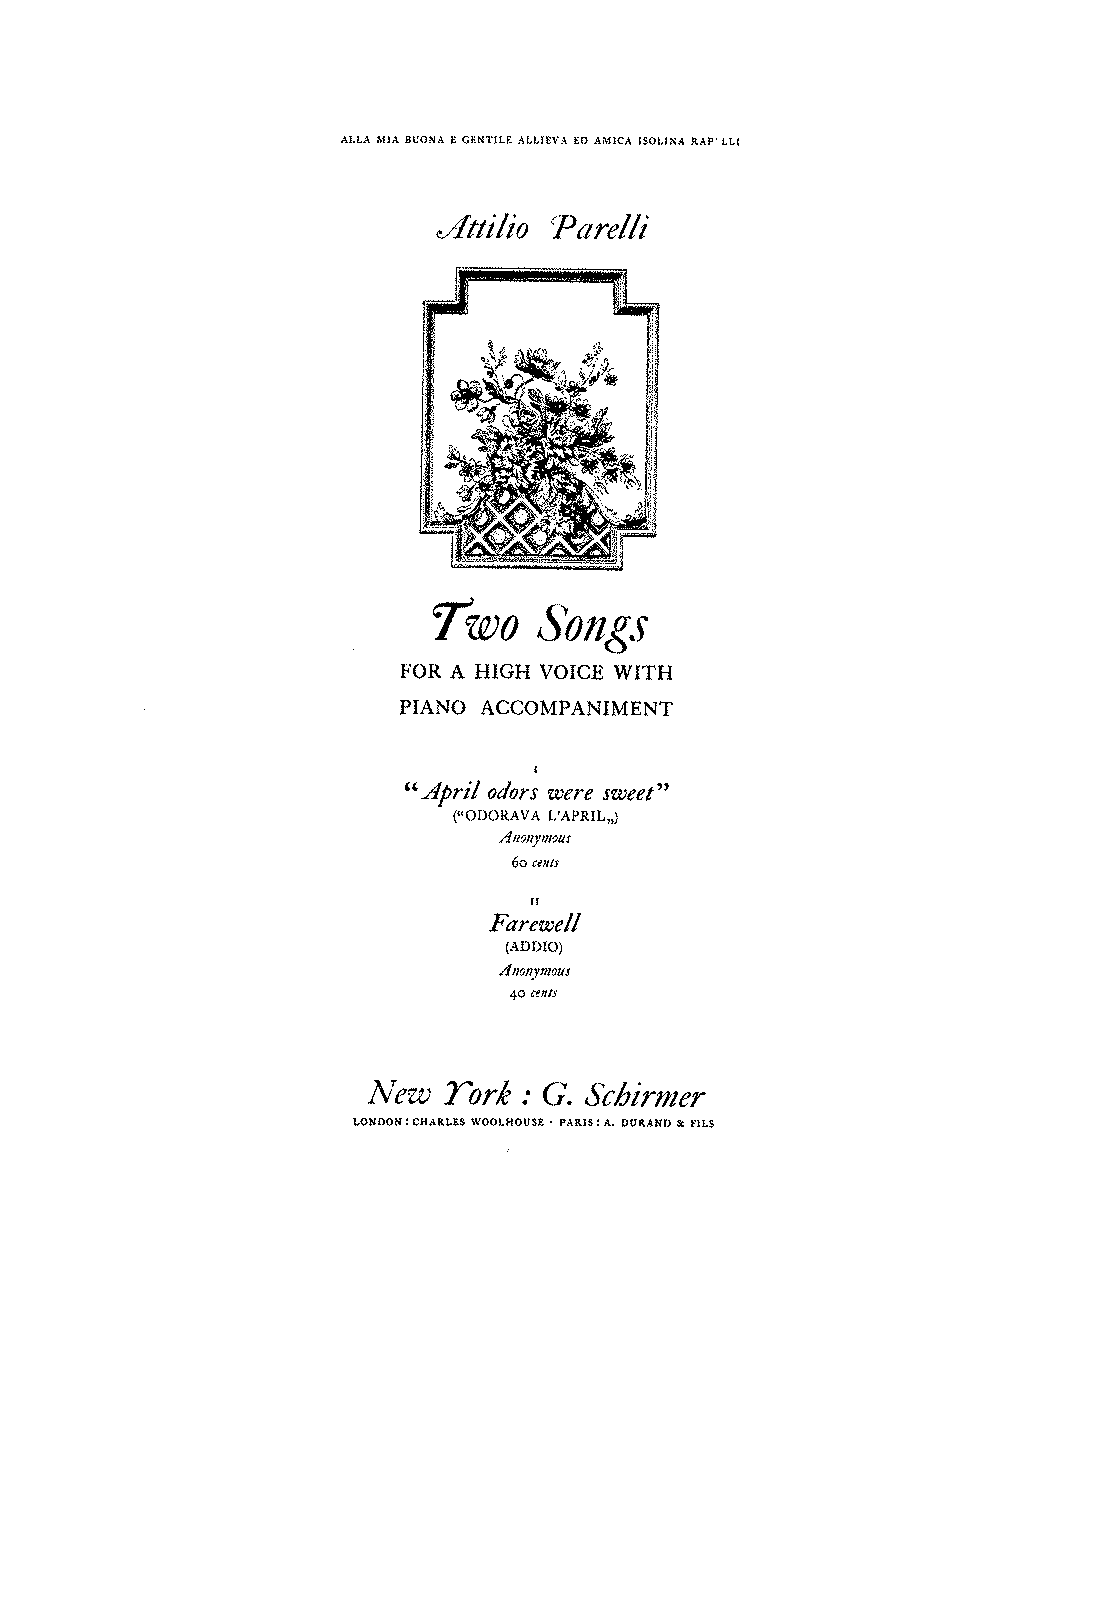 SIBLEY1802.21531.9251-39087011997980two songs parelli.pdf